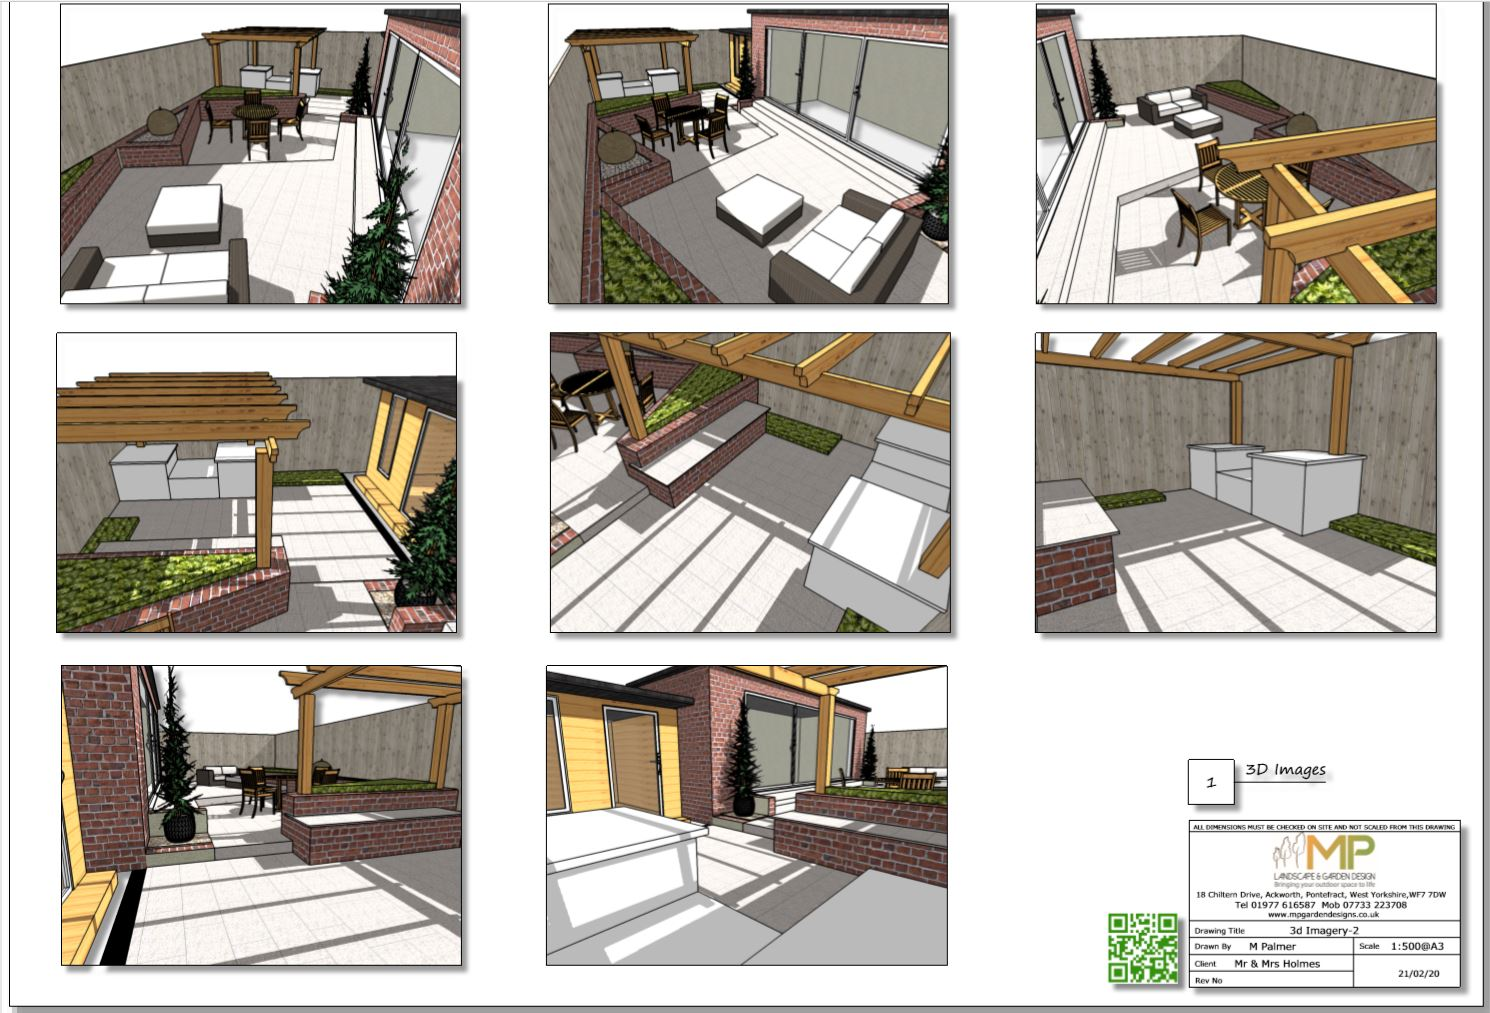 4, Concept plan 3D images-1 for a rear garden in Wakefield